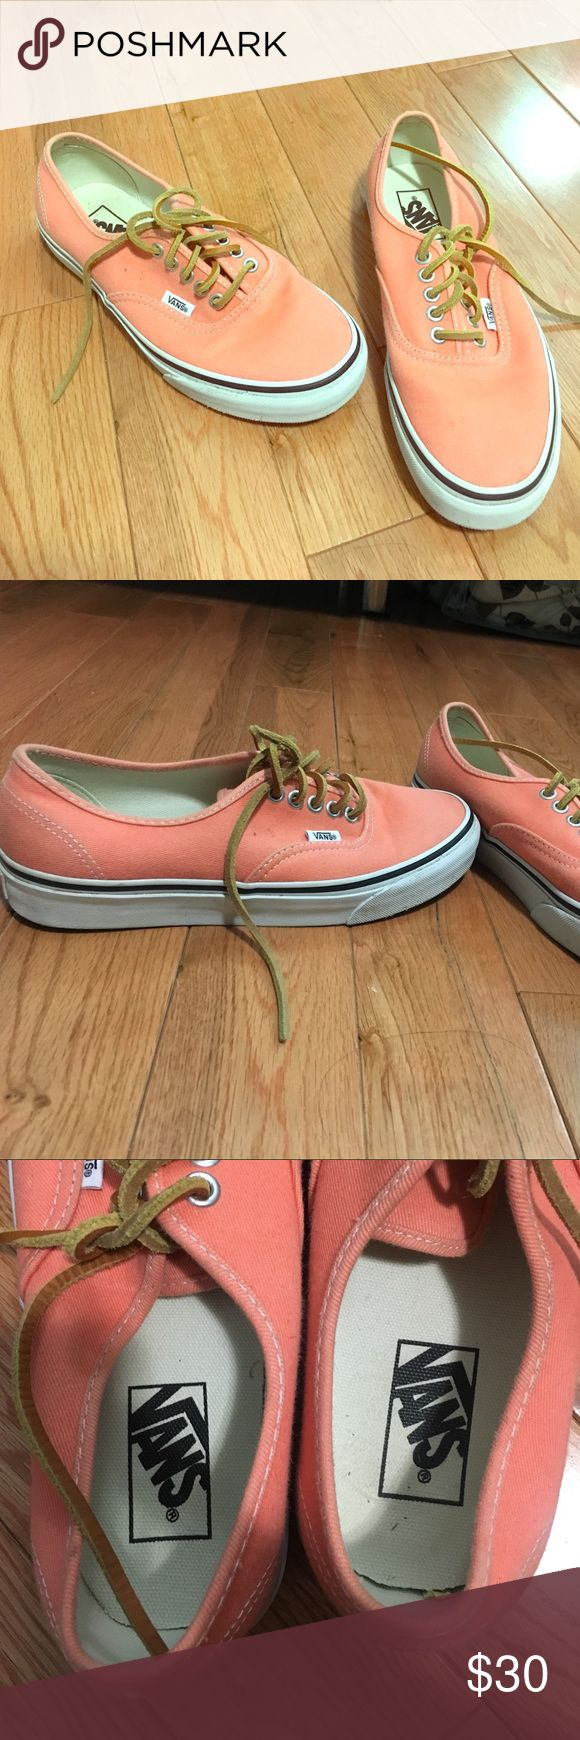 Vans original design with boat shoe laces Light orange. Thick laces similar to boat shoes. Great condition. Barely used. Size 8. Vans Shoes Sneakers